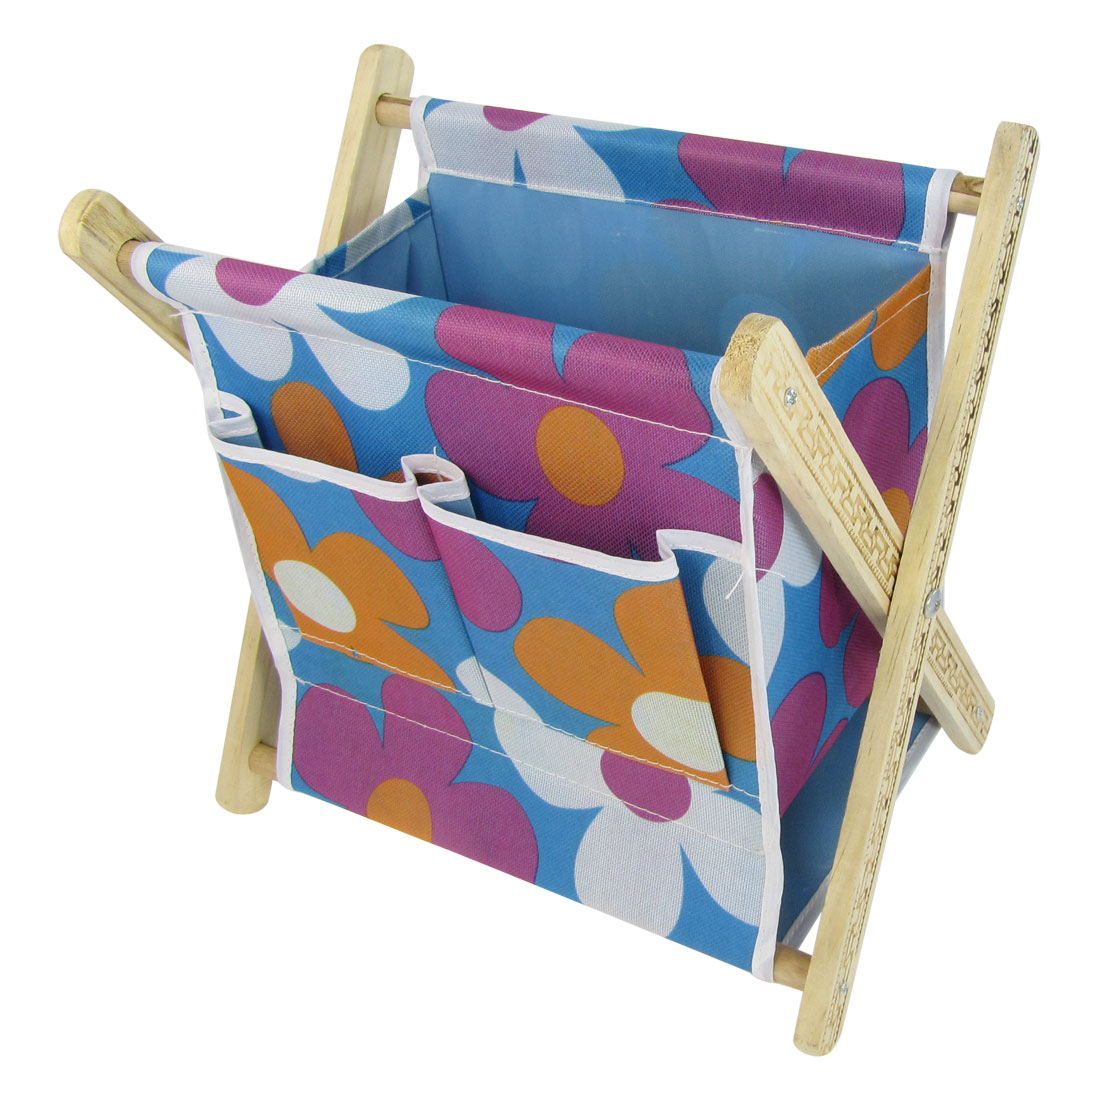 Flower Pattern Rectangular Wood Rack Storage Pouch Bag Basket Blue Purple